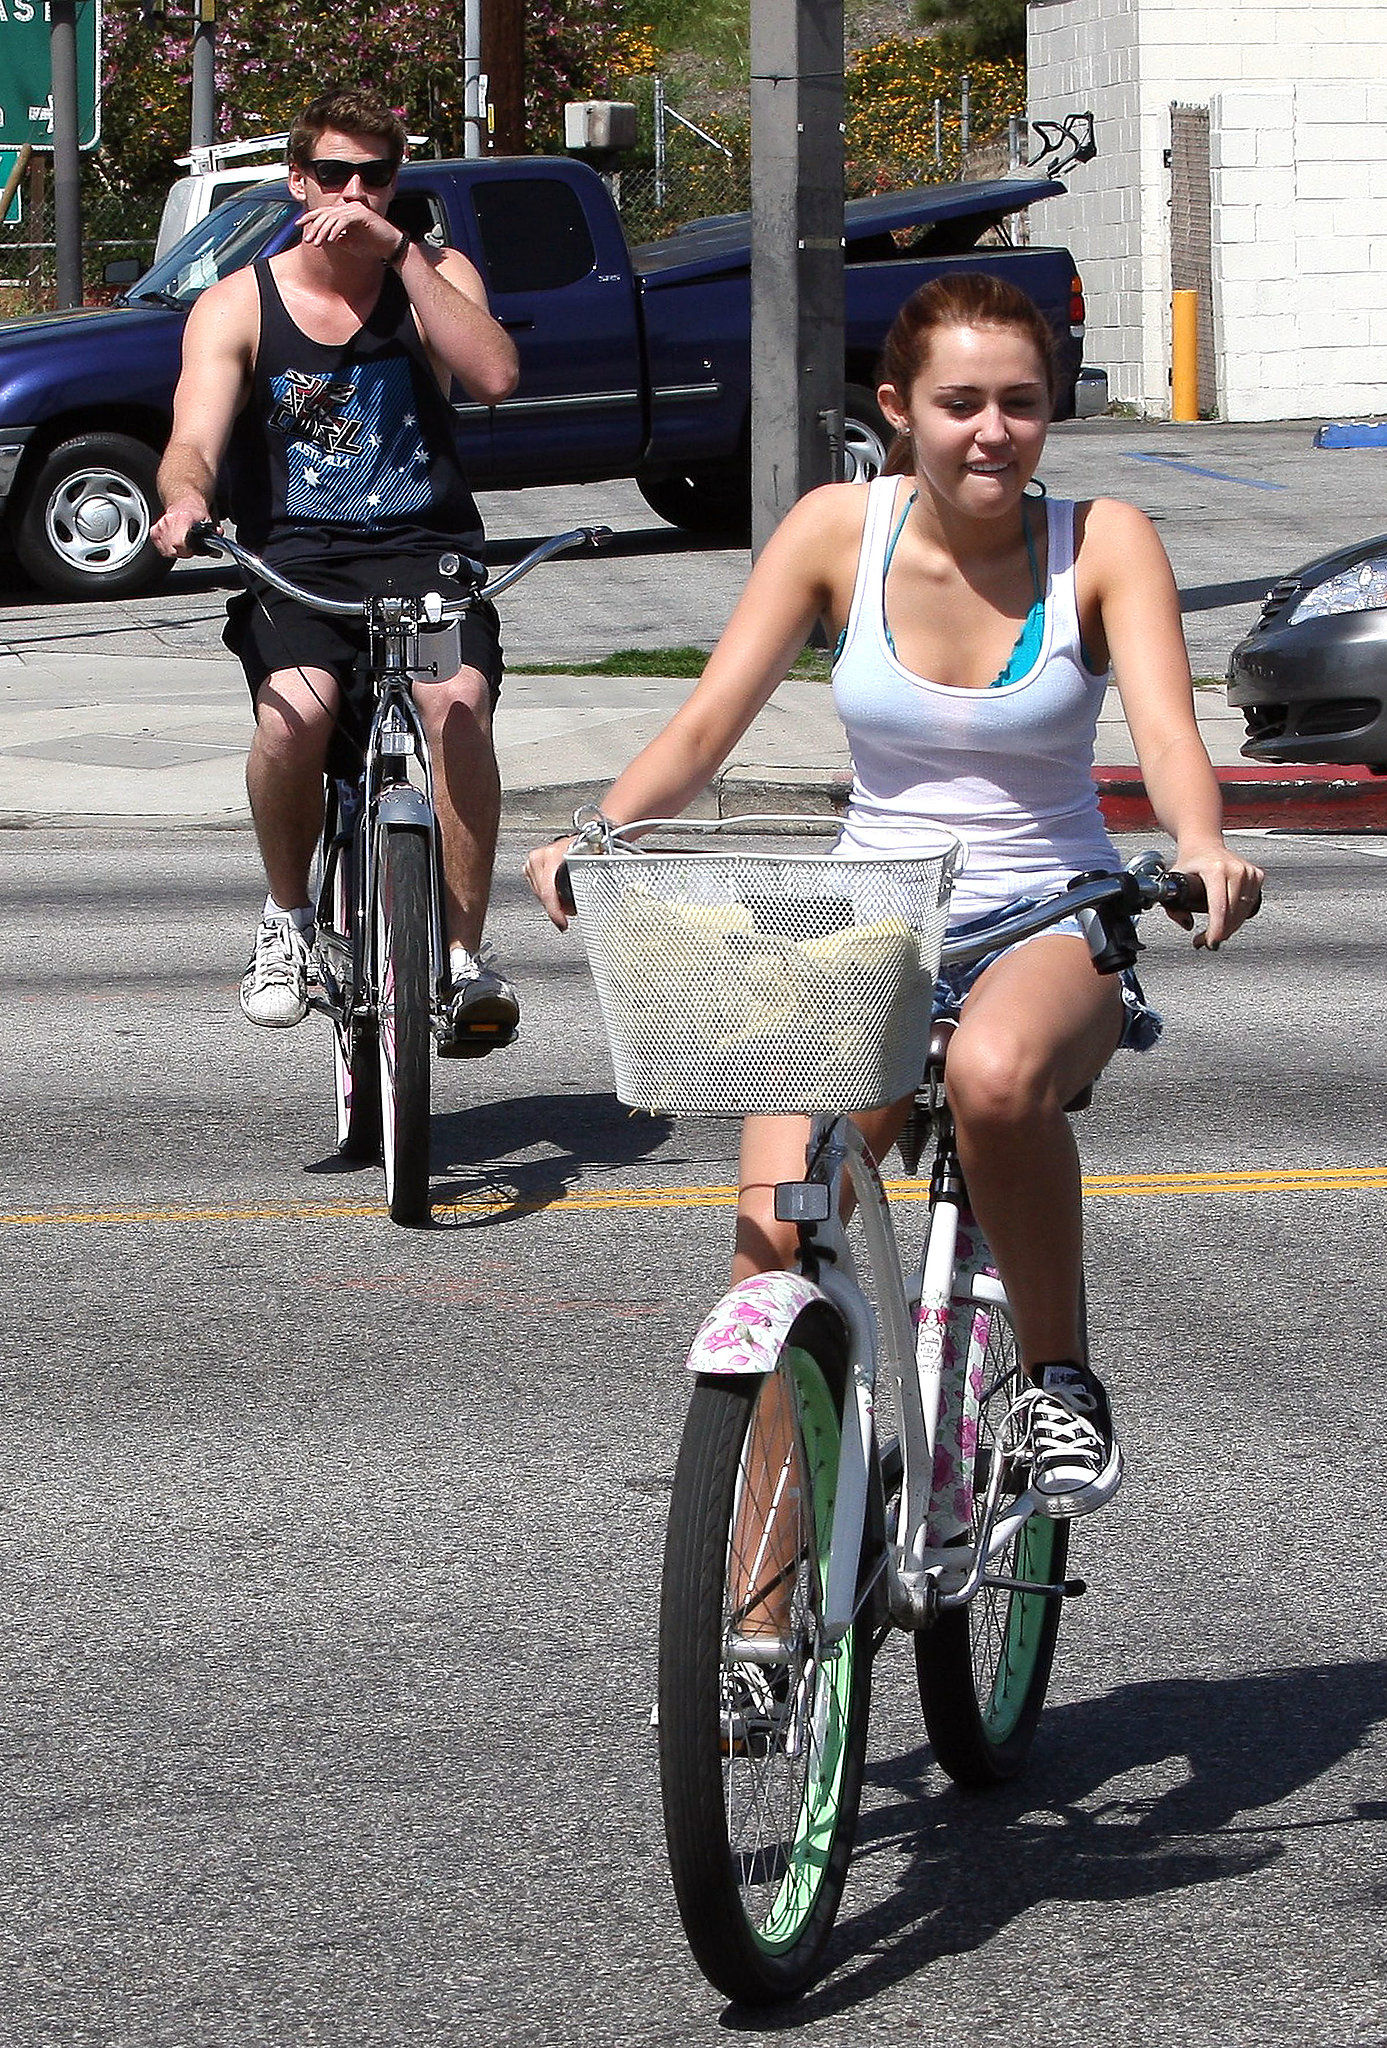 Miley Cyrus and Liam Hemsworth were biking buddies in March 2010 when they rode around Toluca Lake, CA.